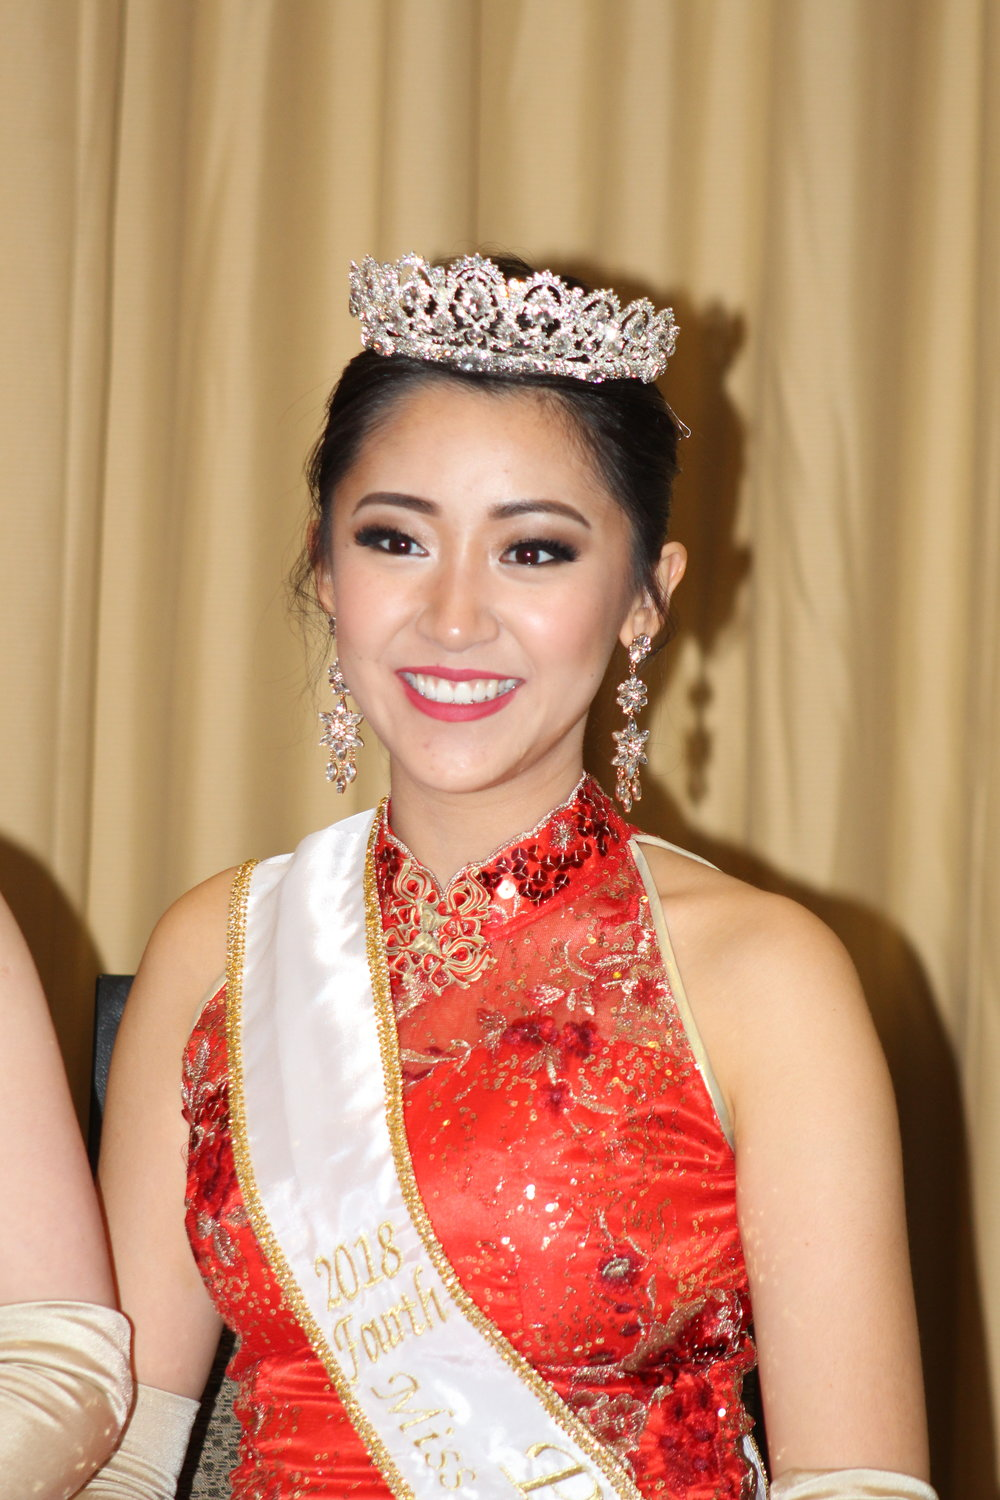 Fourth Princess & Miss Friendship, Anna Wu